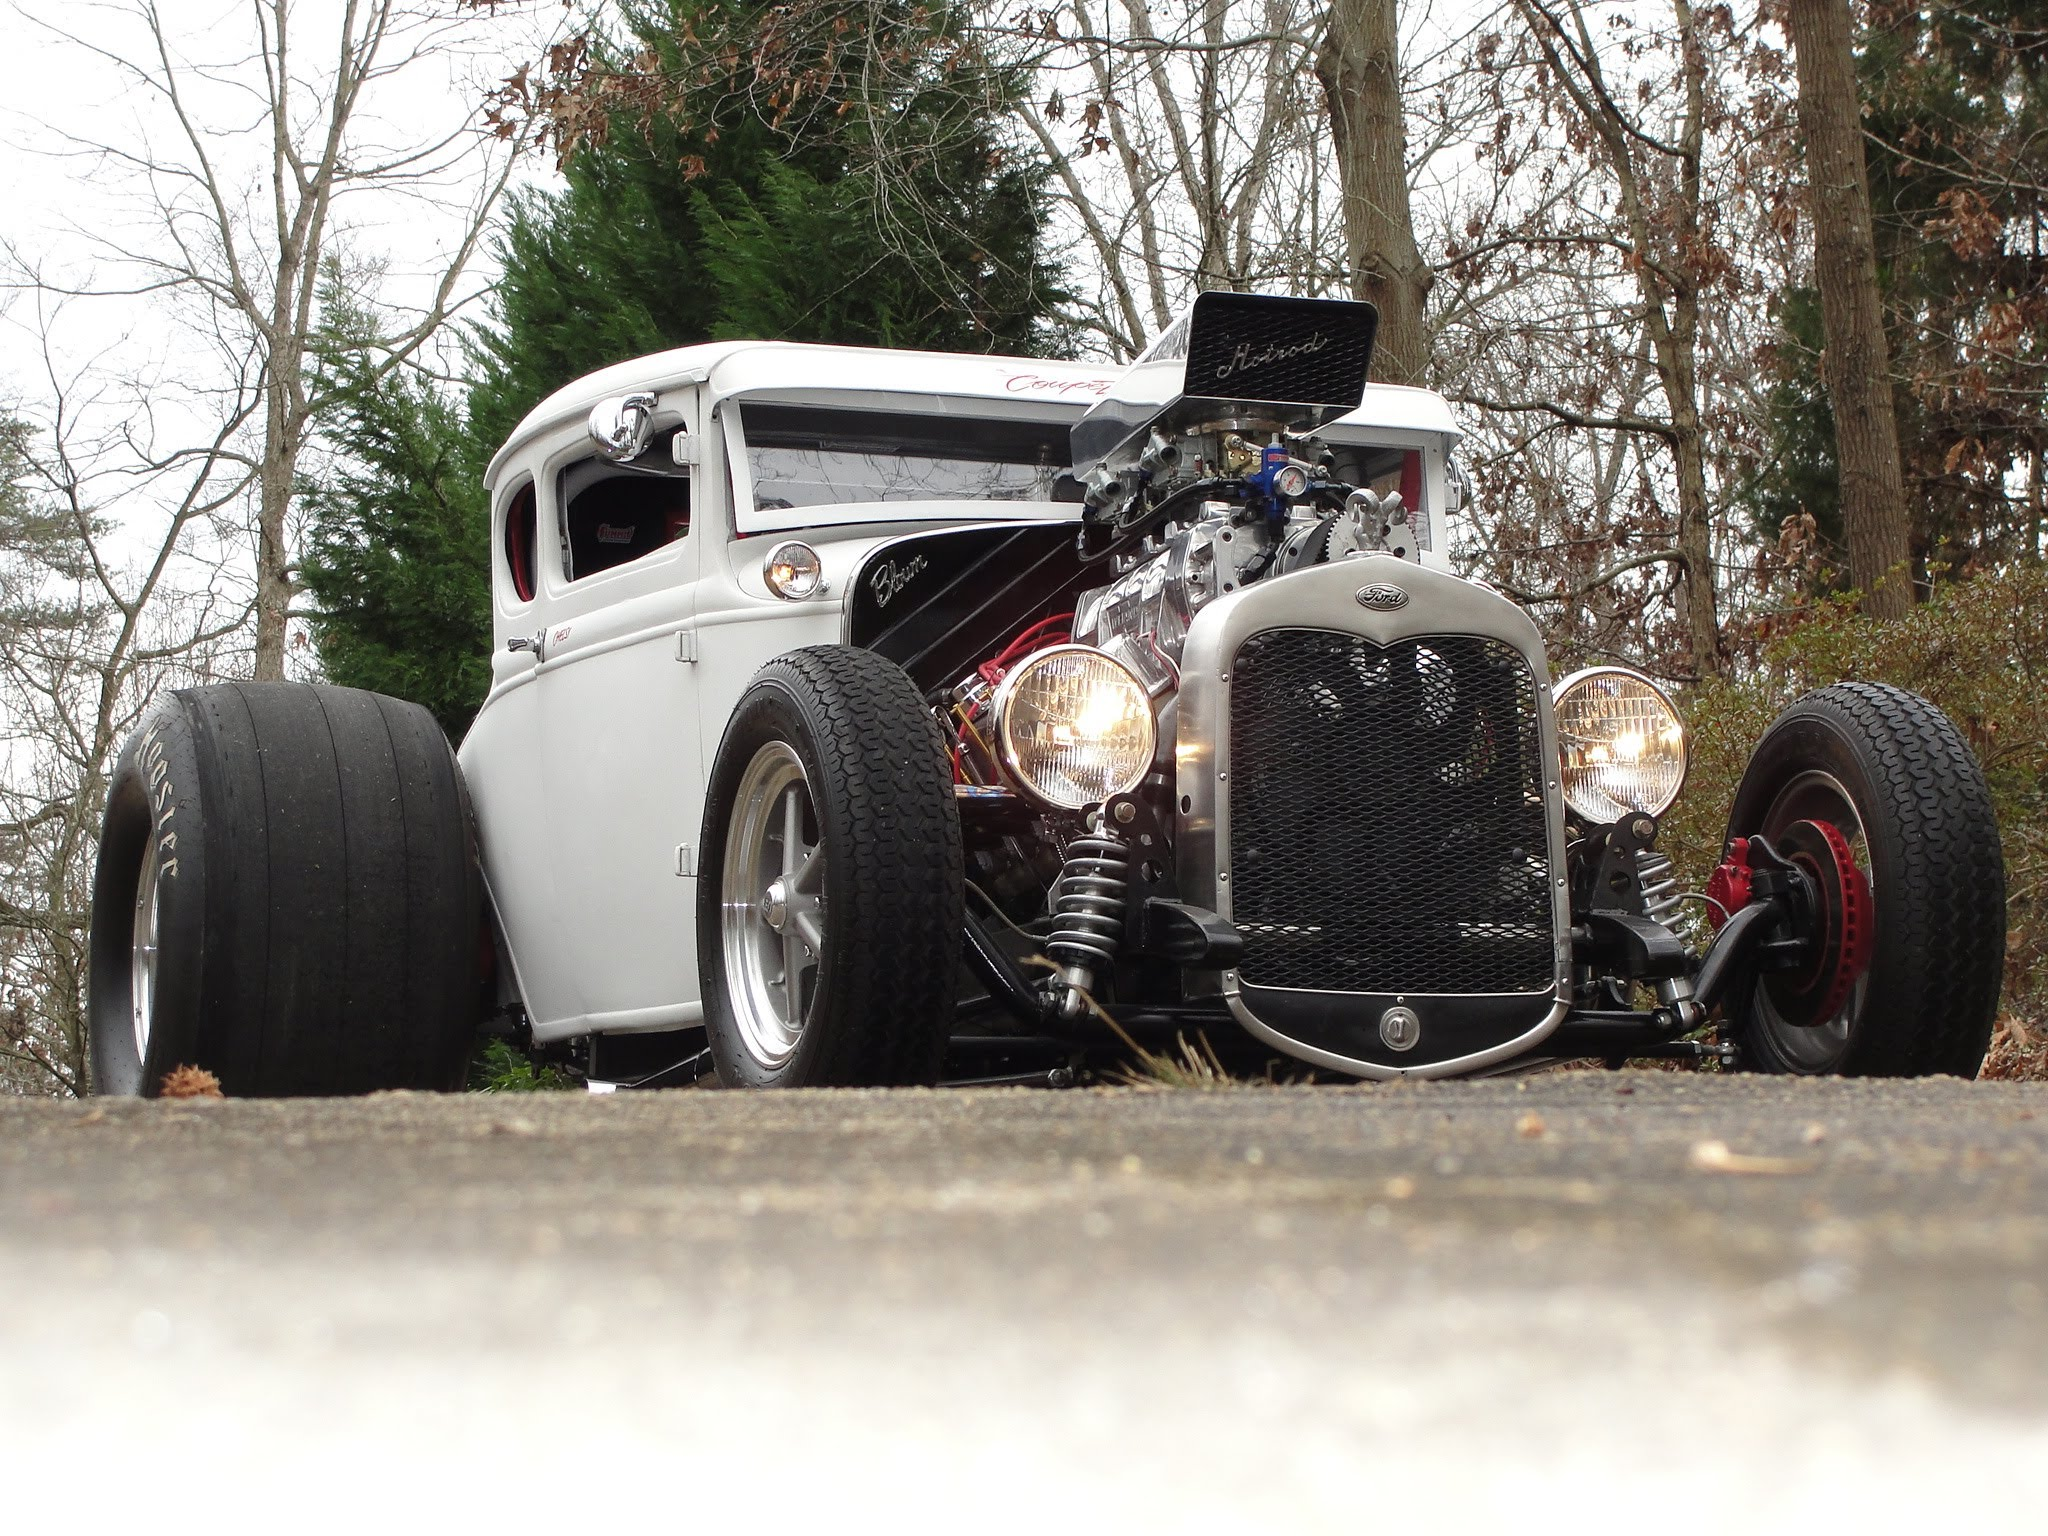 7000 Rpm Full Throttle Burnout Of The Legendary Coupezella Hot Rat Rod